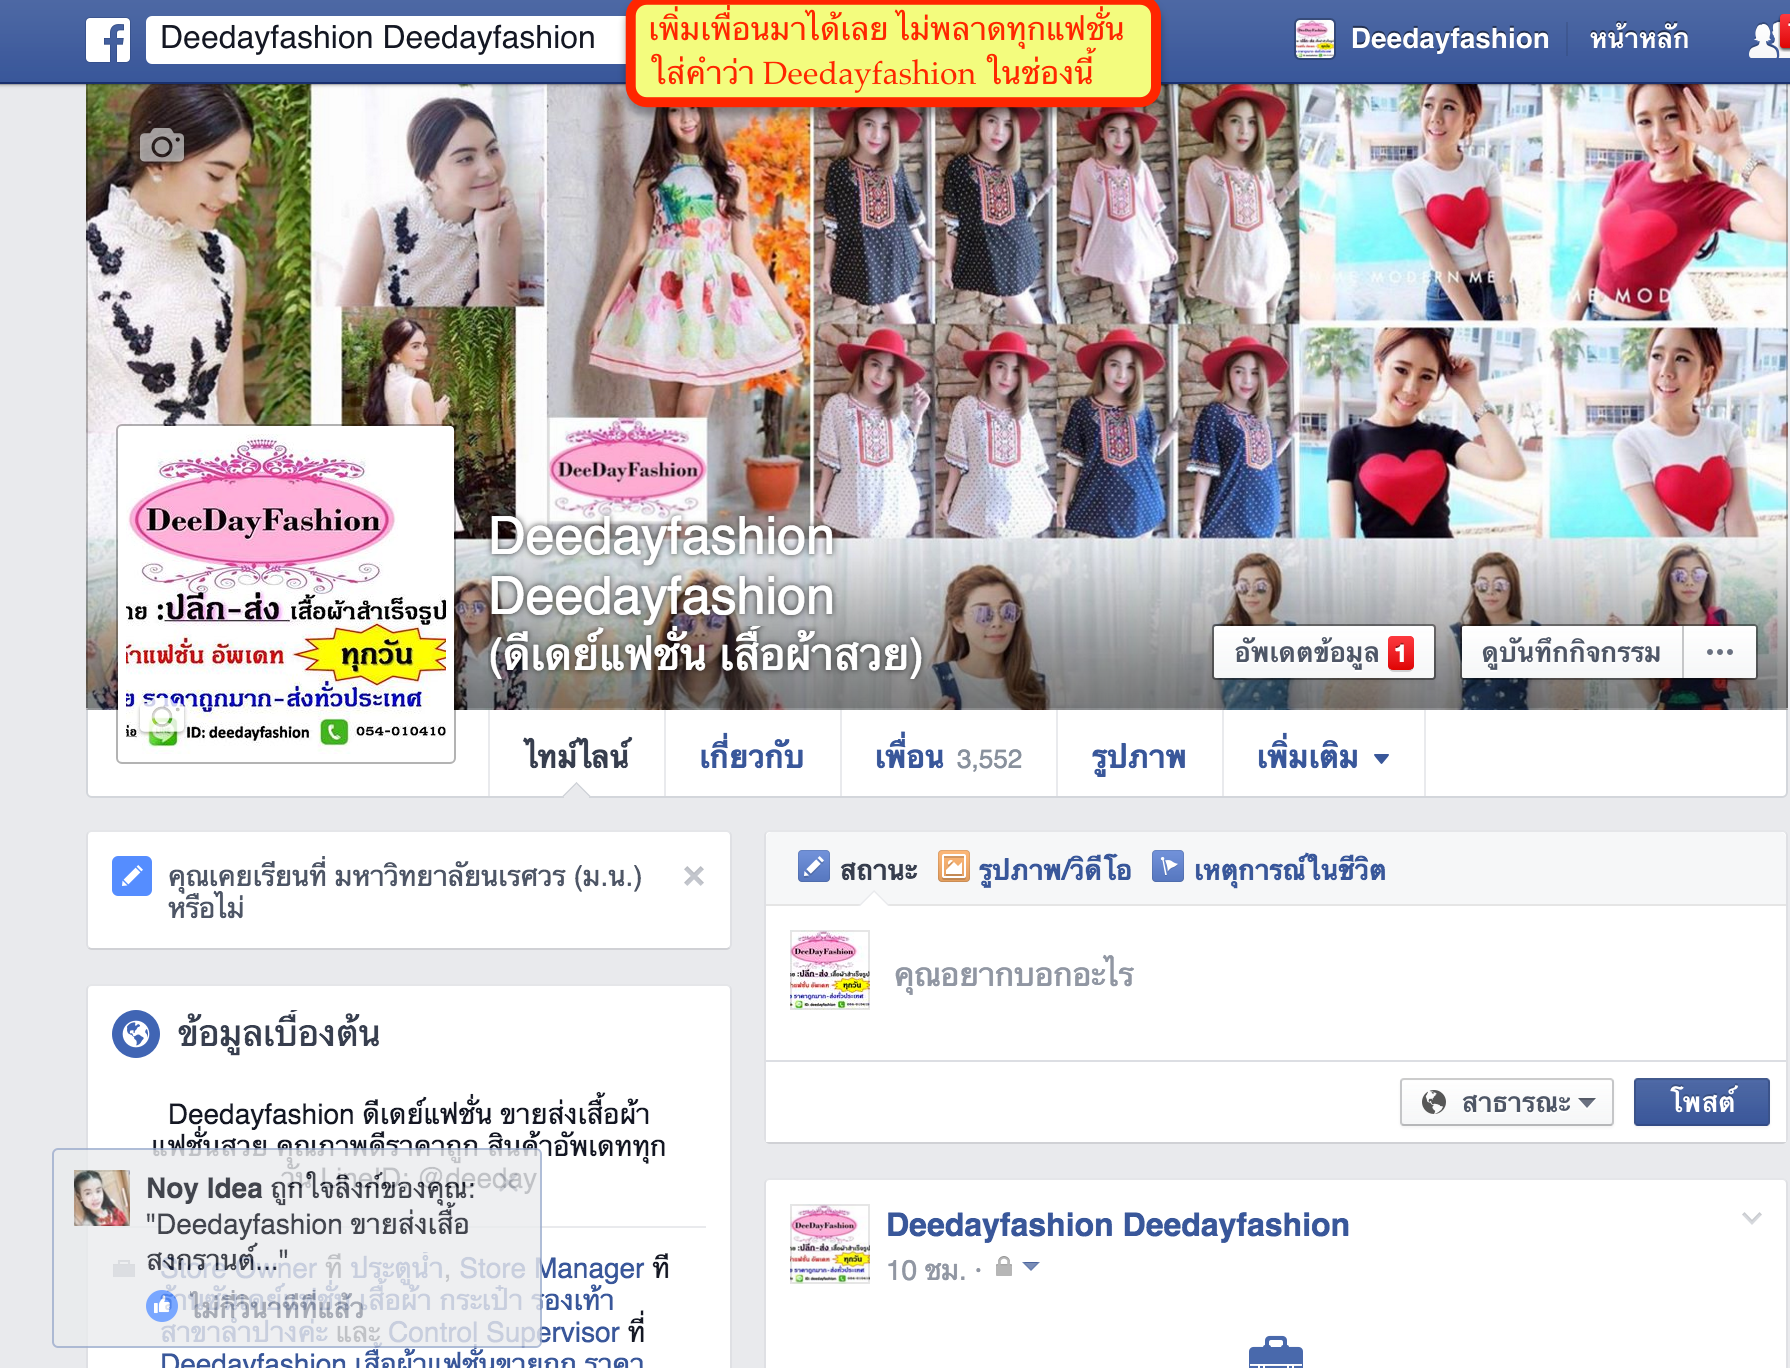 Facebook:deedayfashion